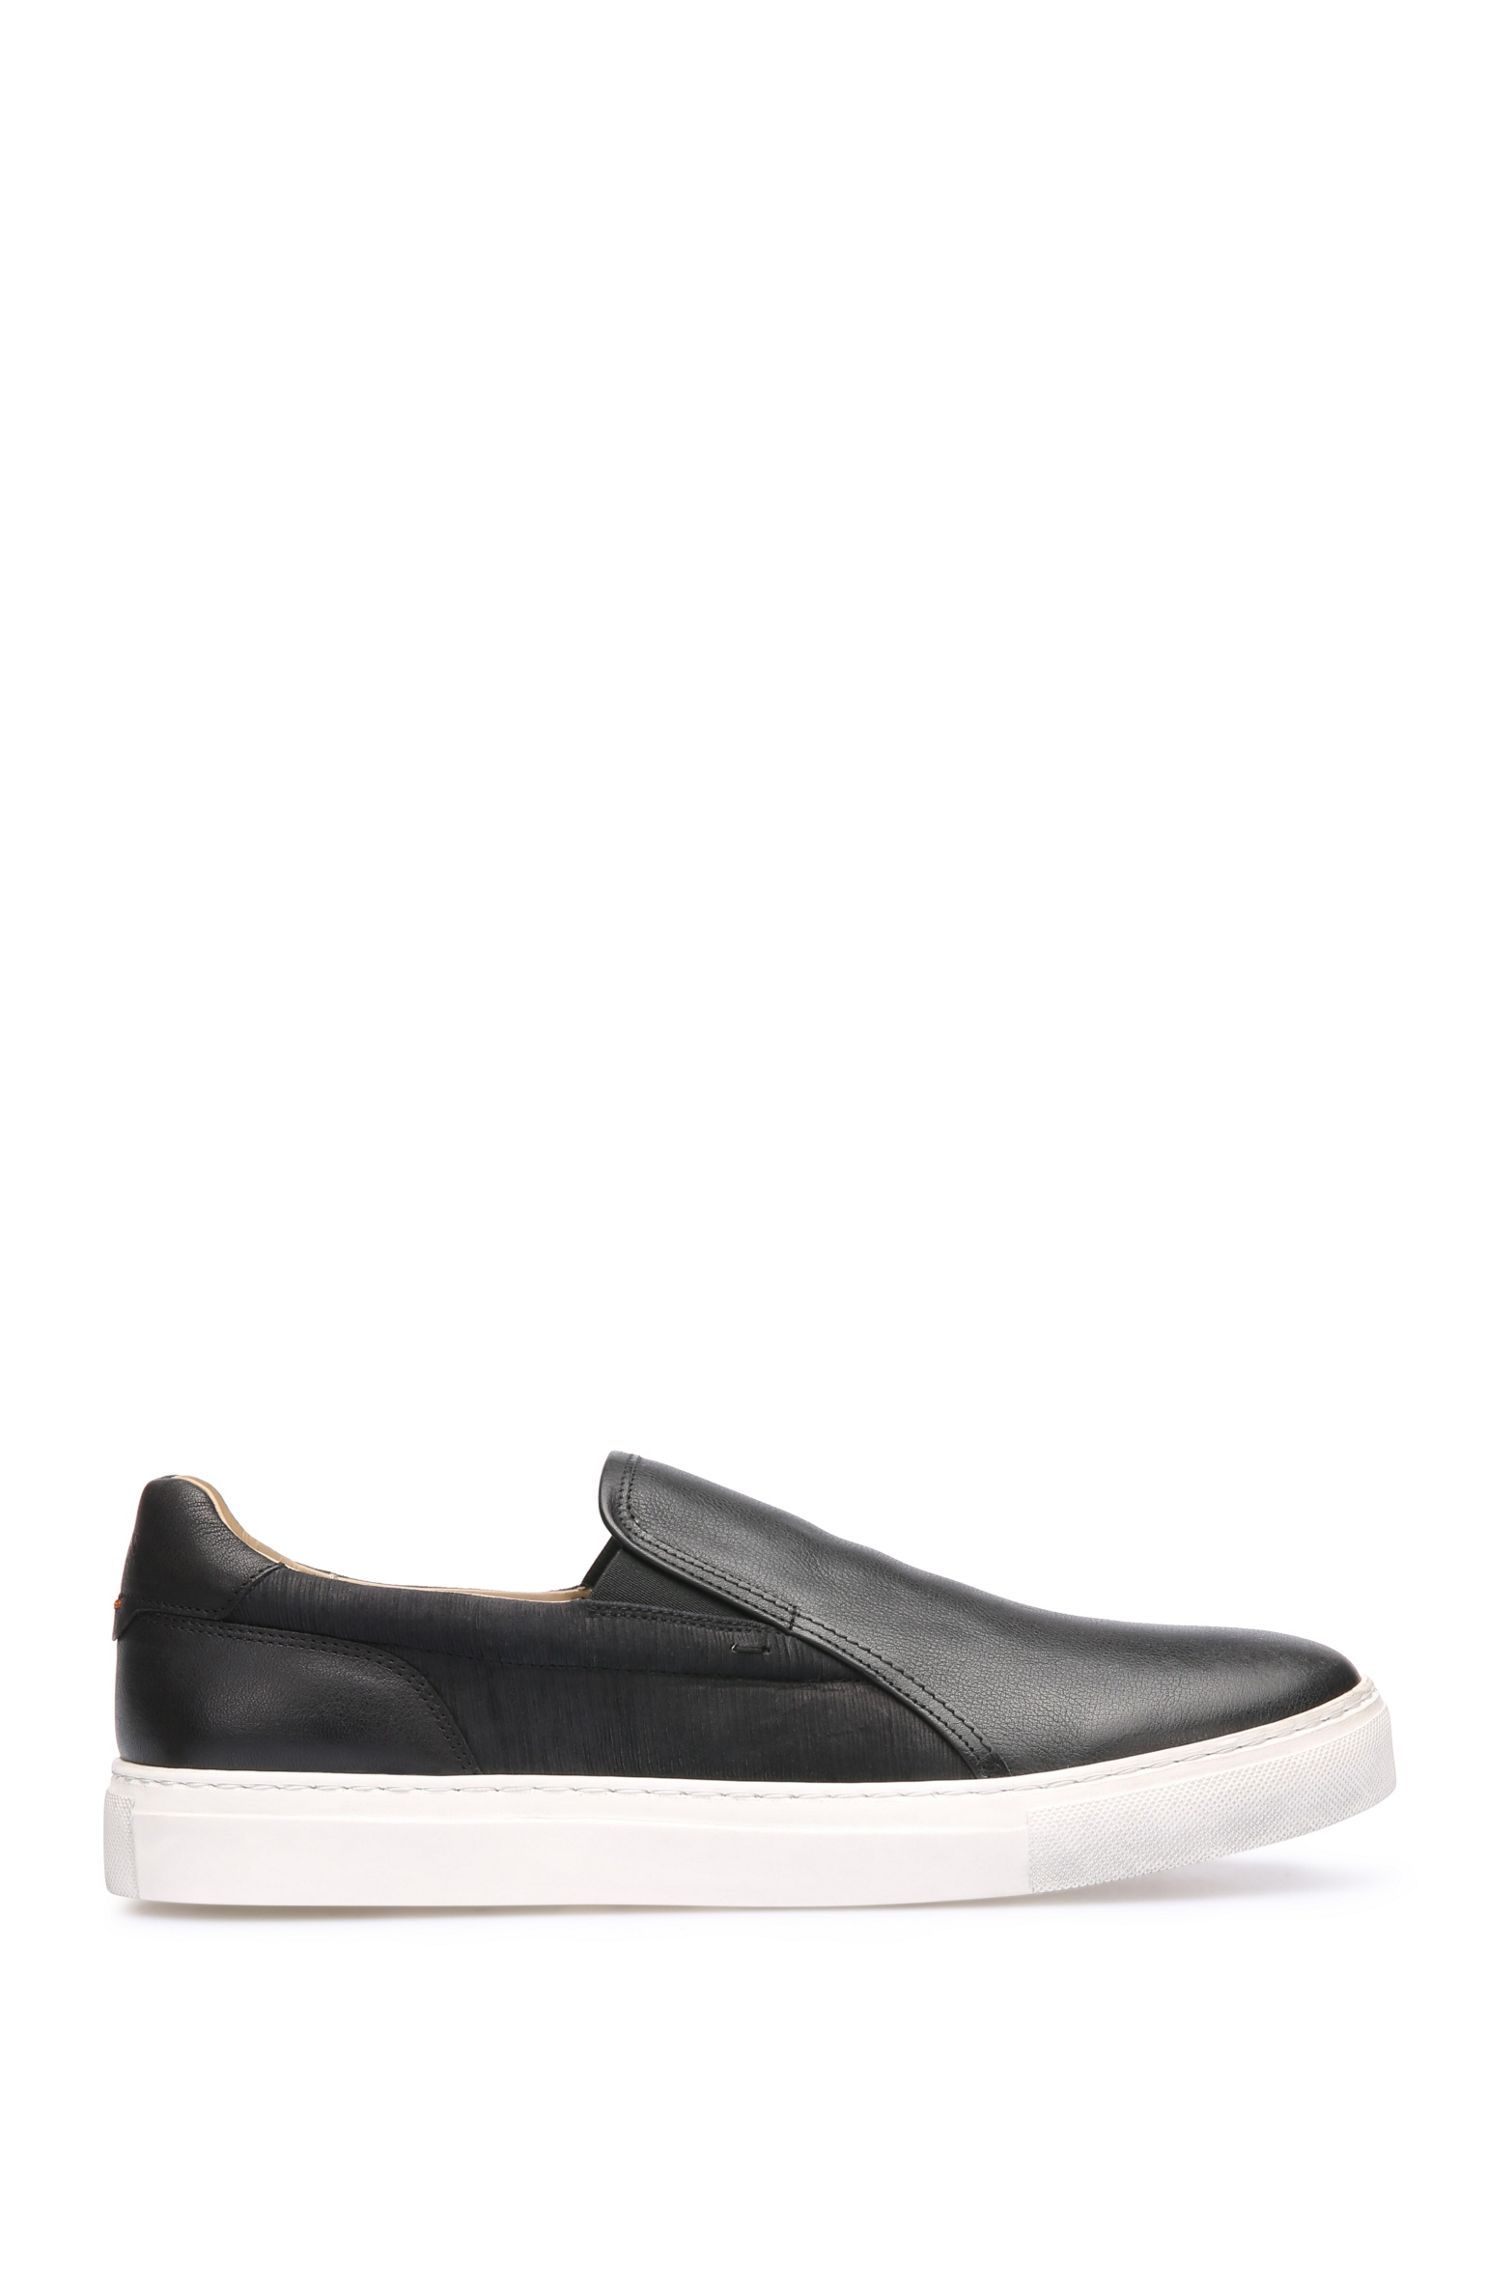 Leder-Sneakers im Slip-on Design: ´NoirSlonsdls`